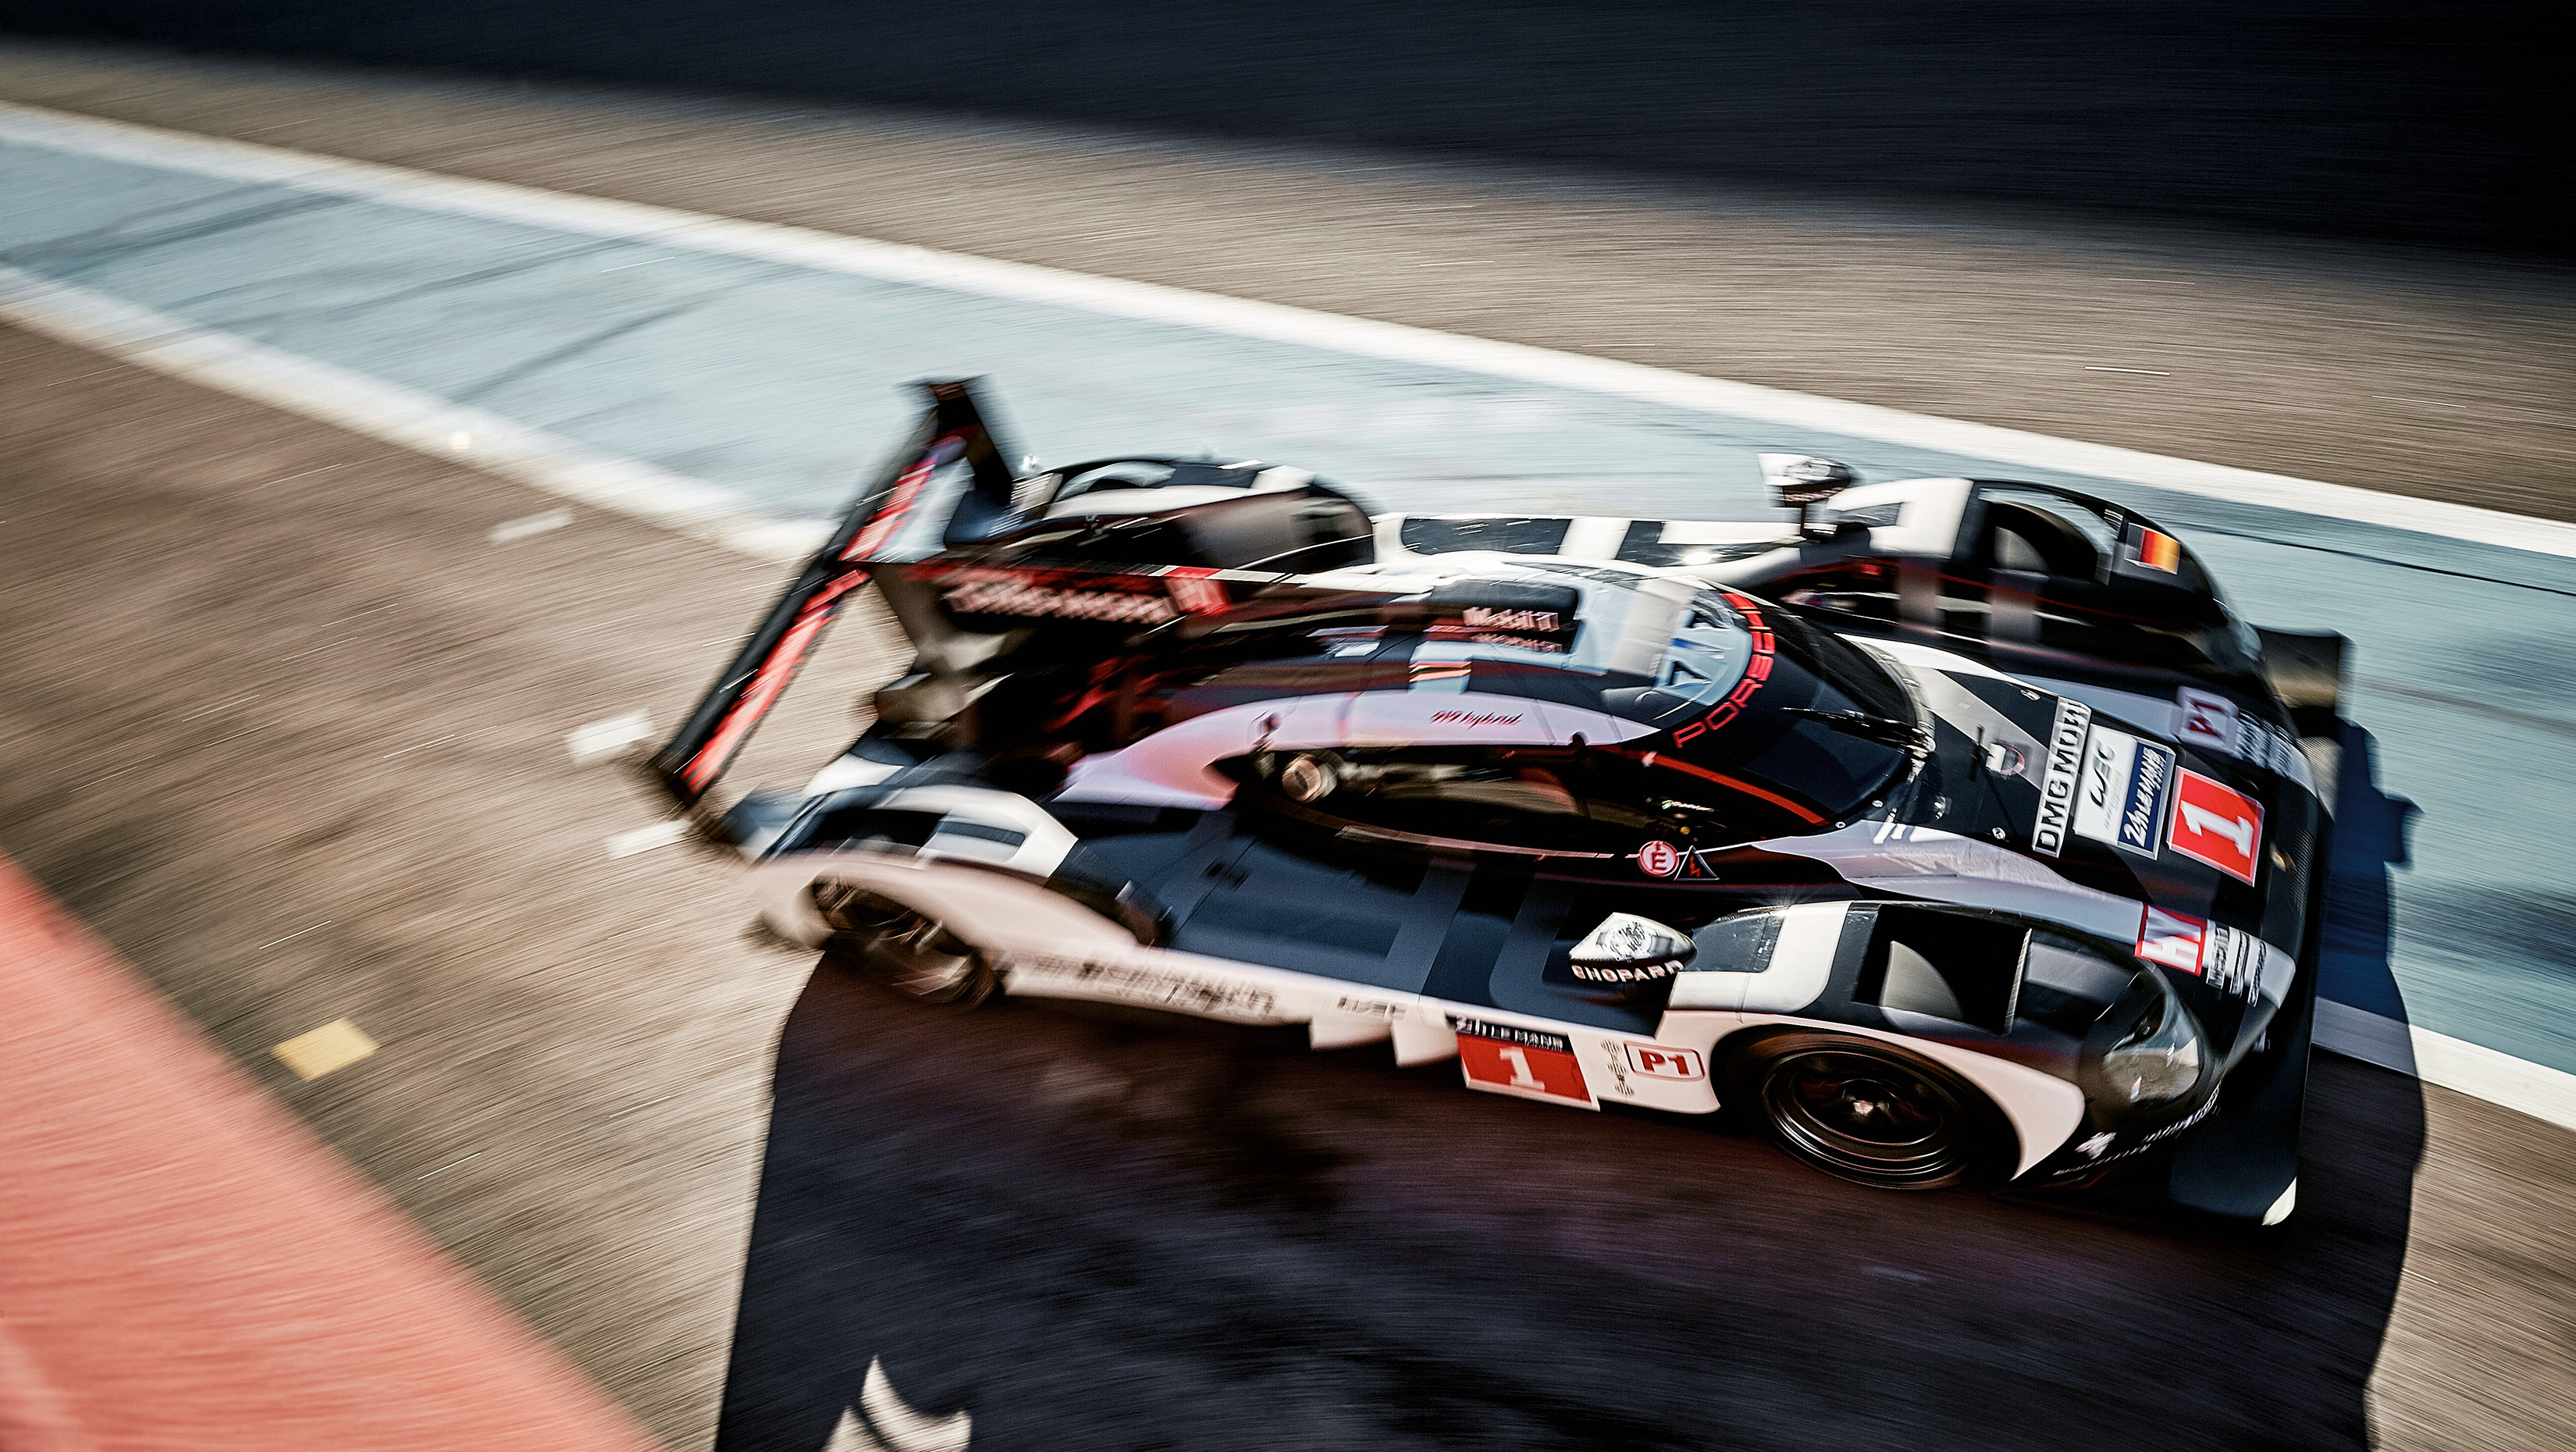 2016 porsche 919 hybrid lmp1 race car packs 900+ horsepower